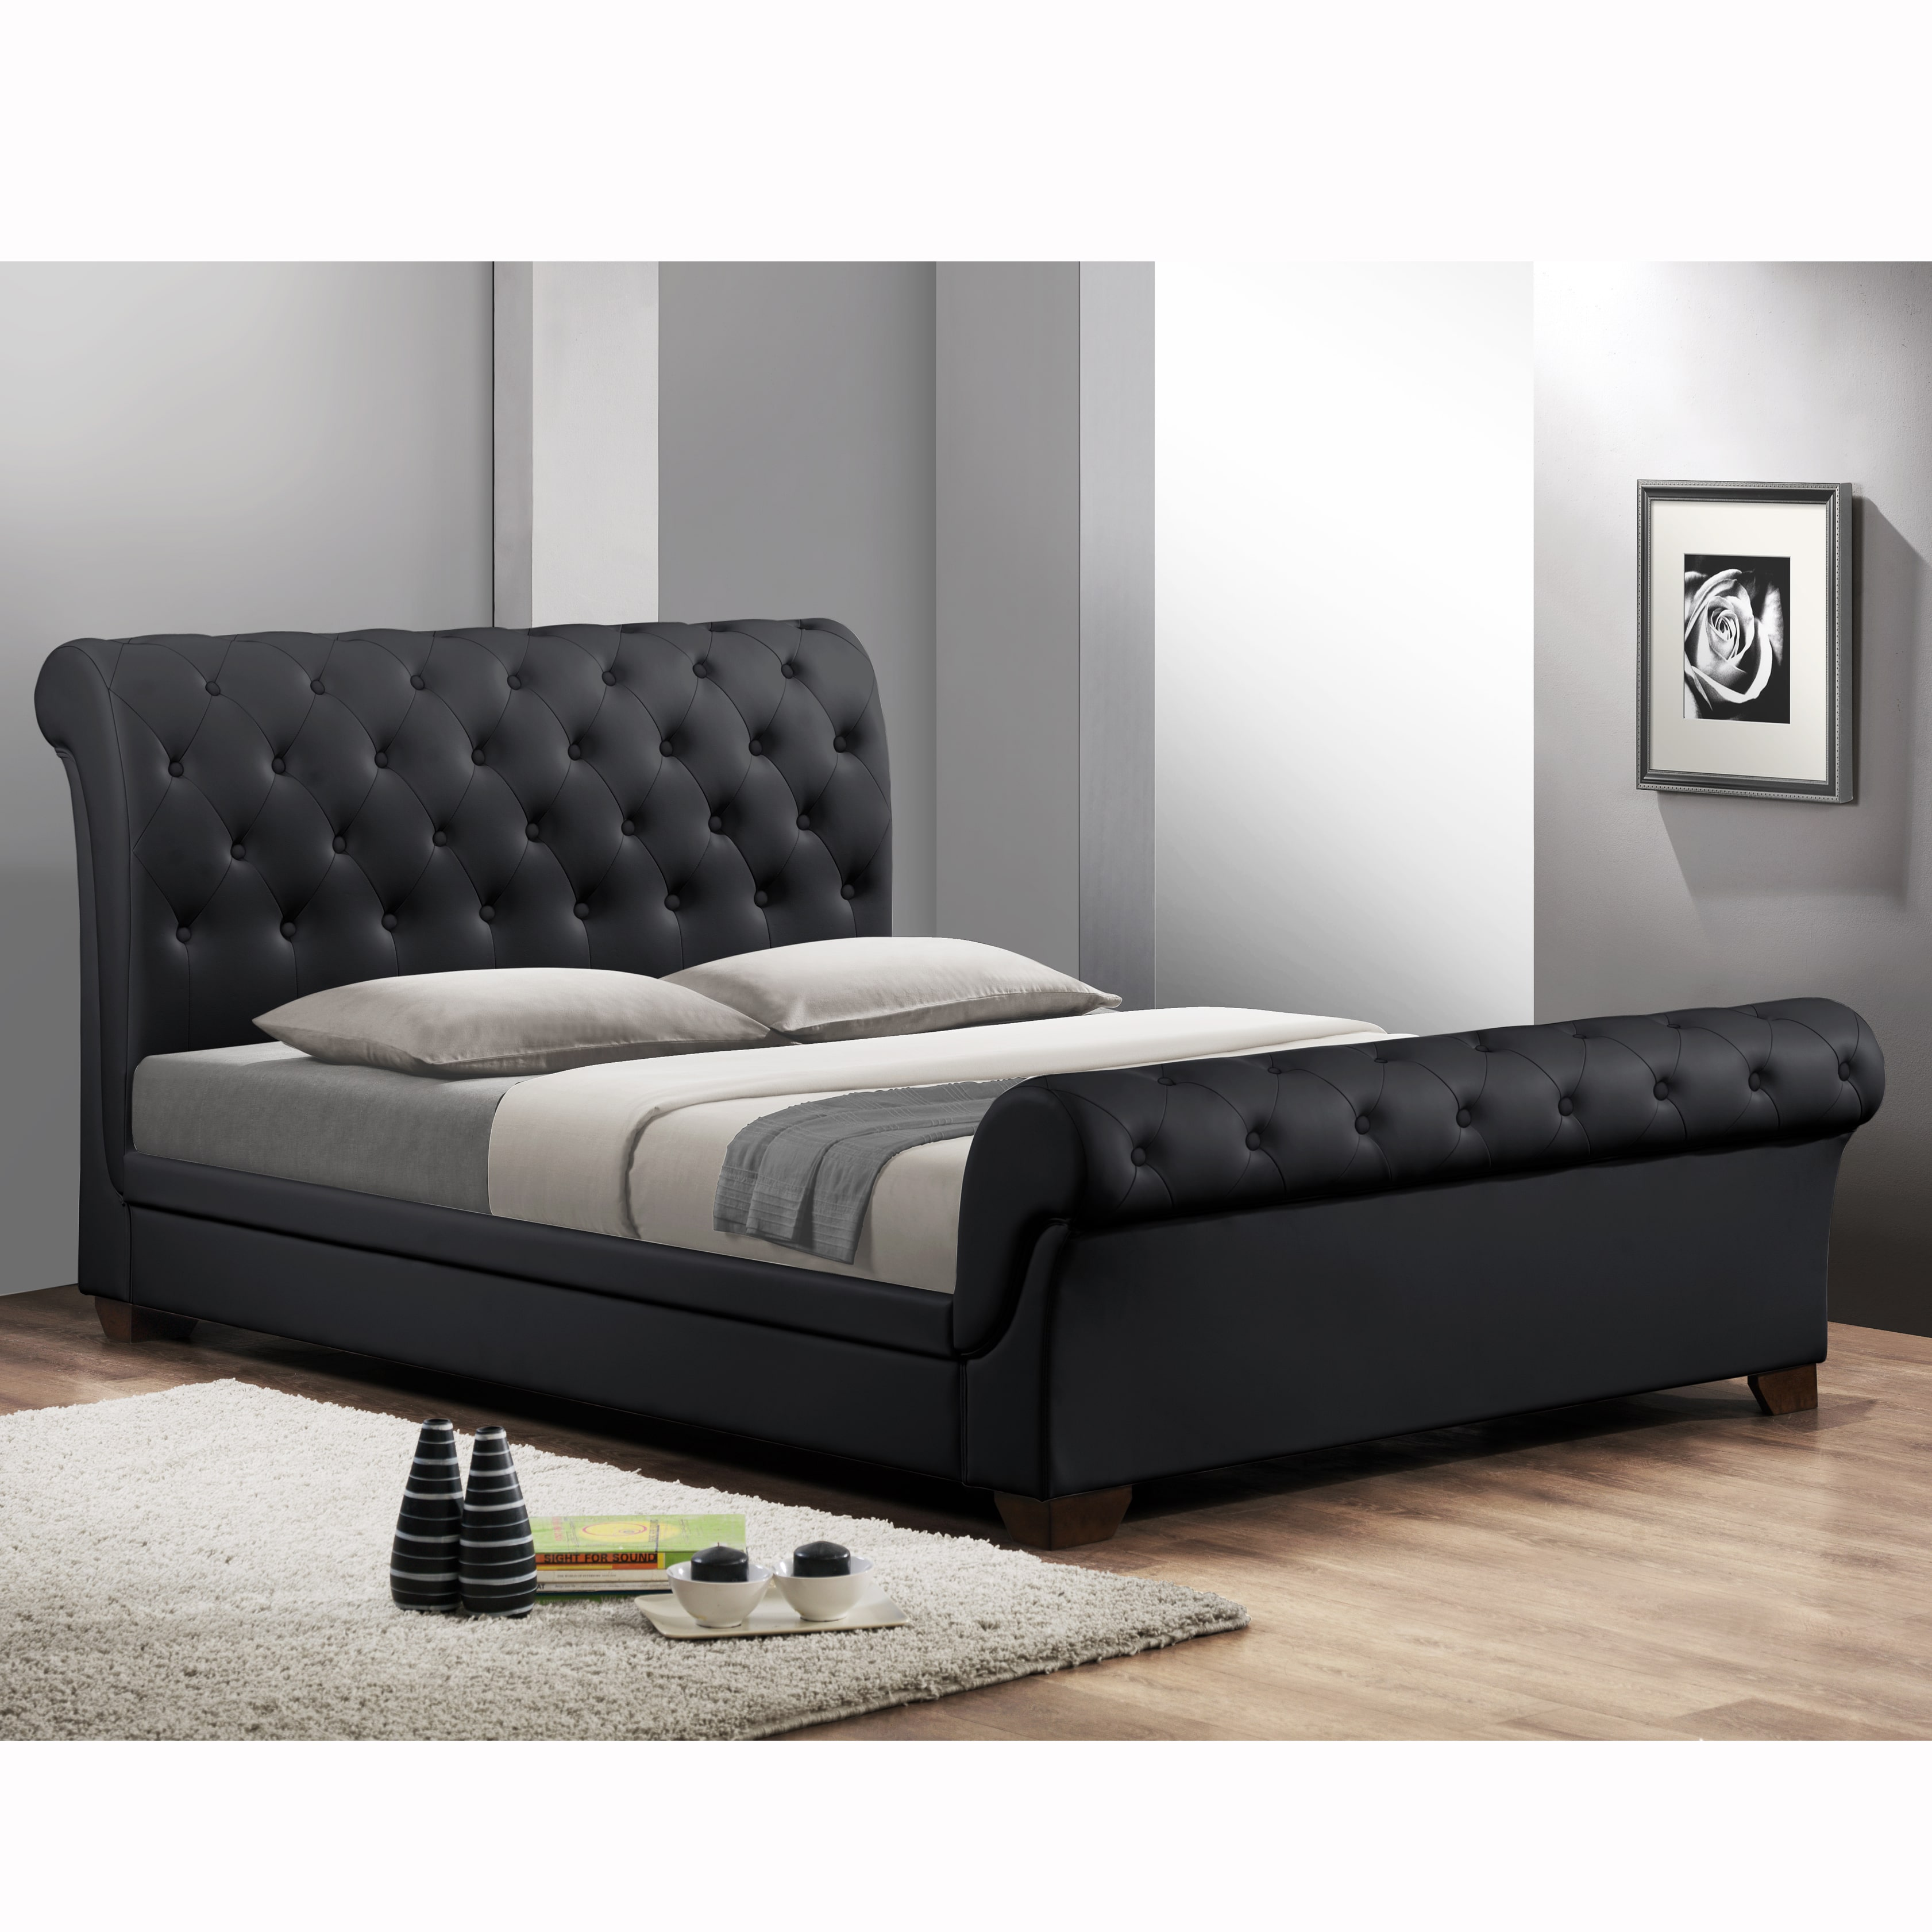 Baxton Studio Leighlin Black Modern Sleigh Bed with Upholstered Headboard Full Size by Overstock